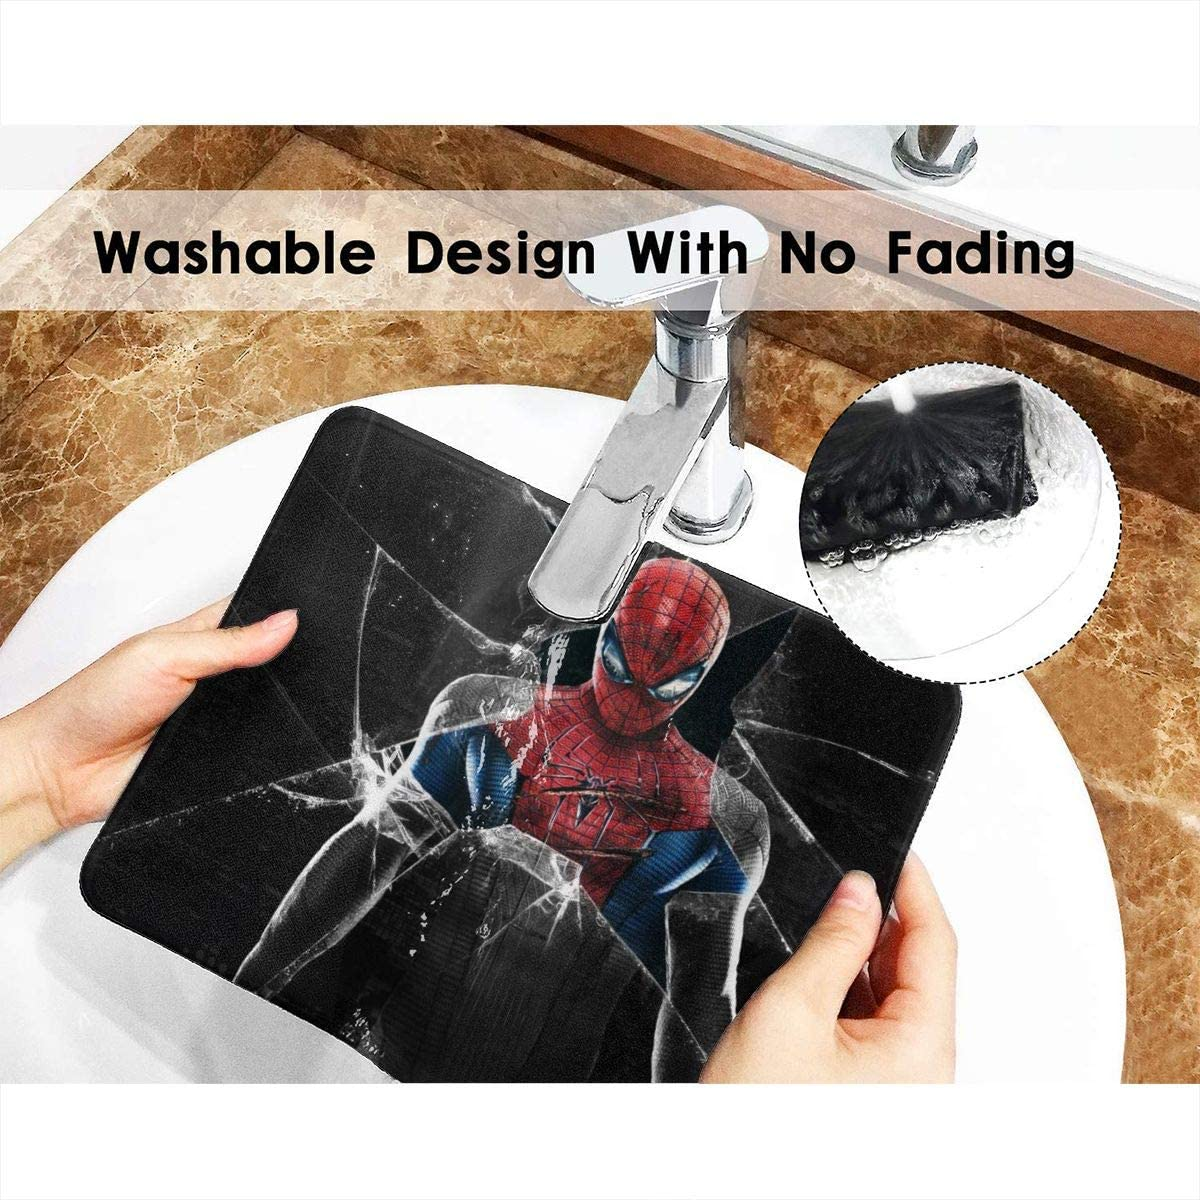 Spiderman Mouse Pad Mouse Mat with Stitched Edge Non-Slip Rubber Base Large Mouse Pads for Laptops Computers and PCs 12 X 10 X 0.12 Inches